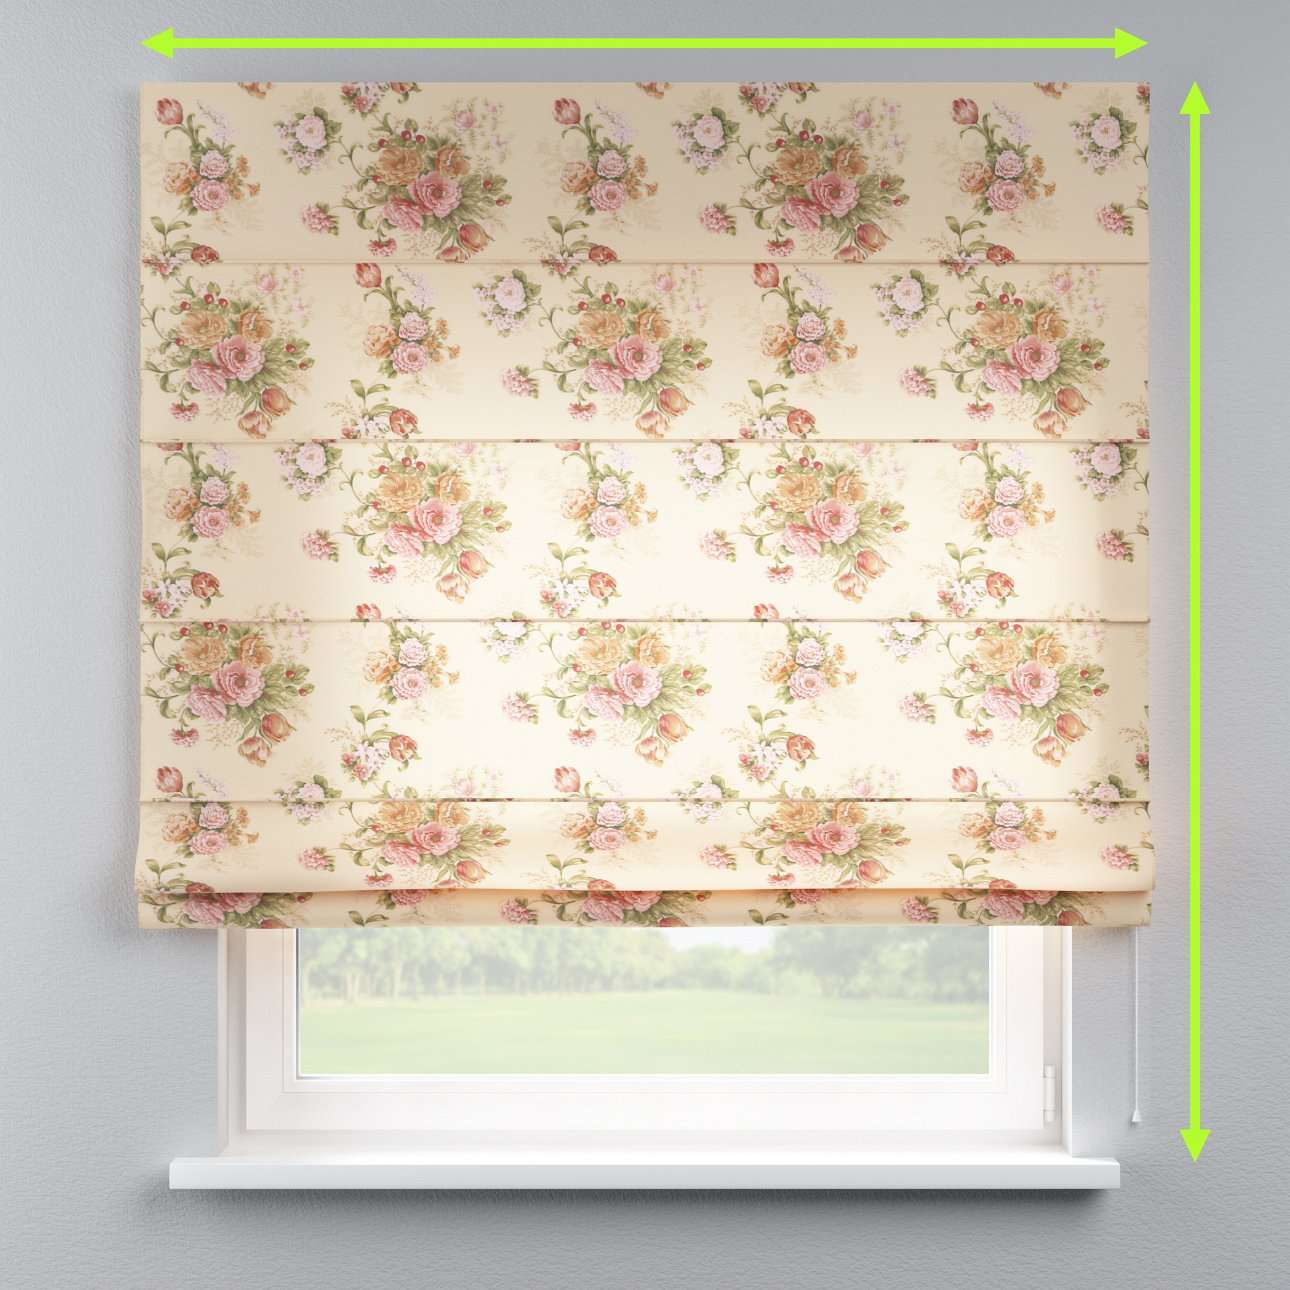 Capri roman blind in collection Flowers, fabric: 302-01